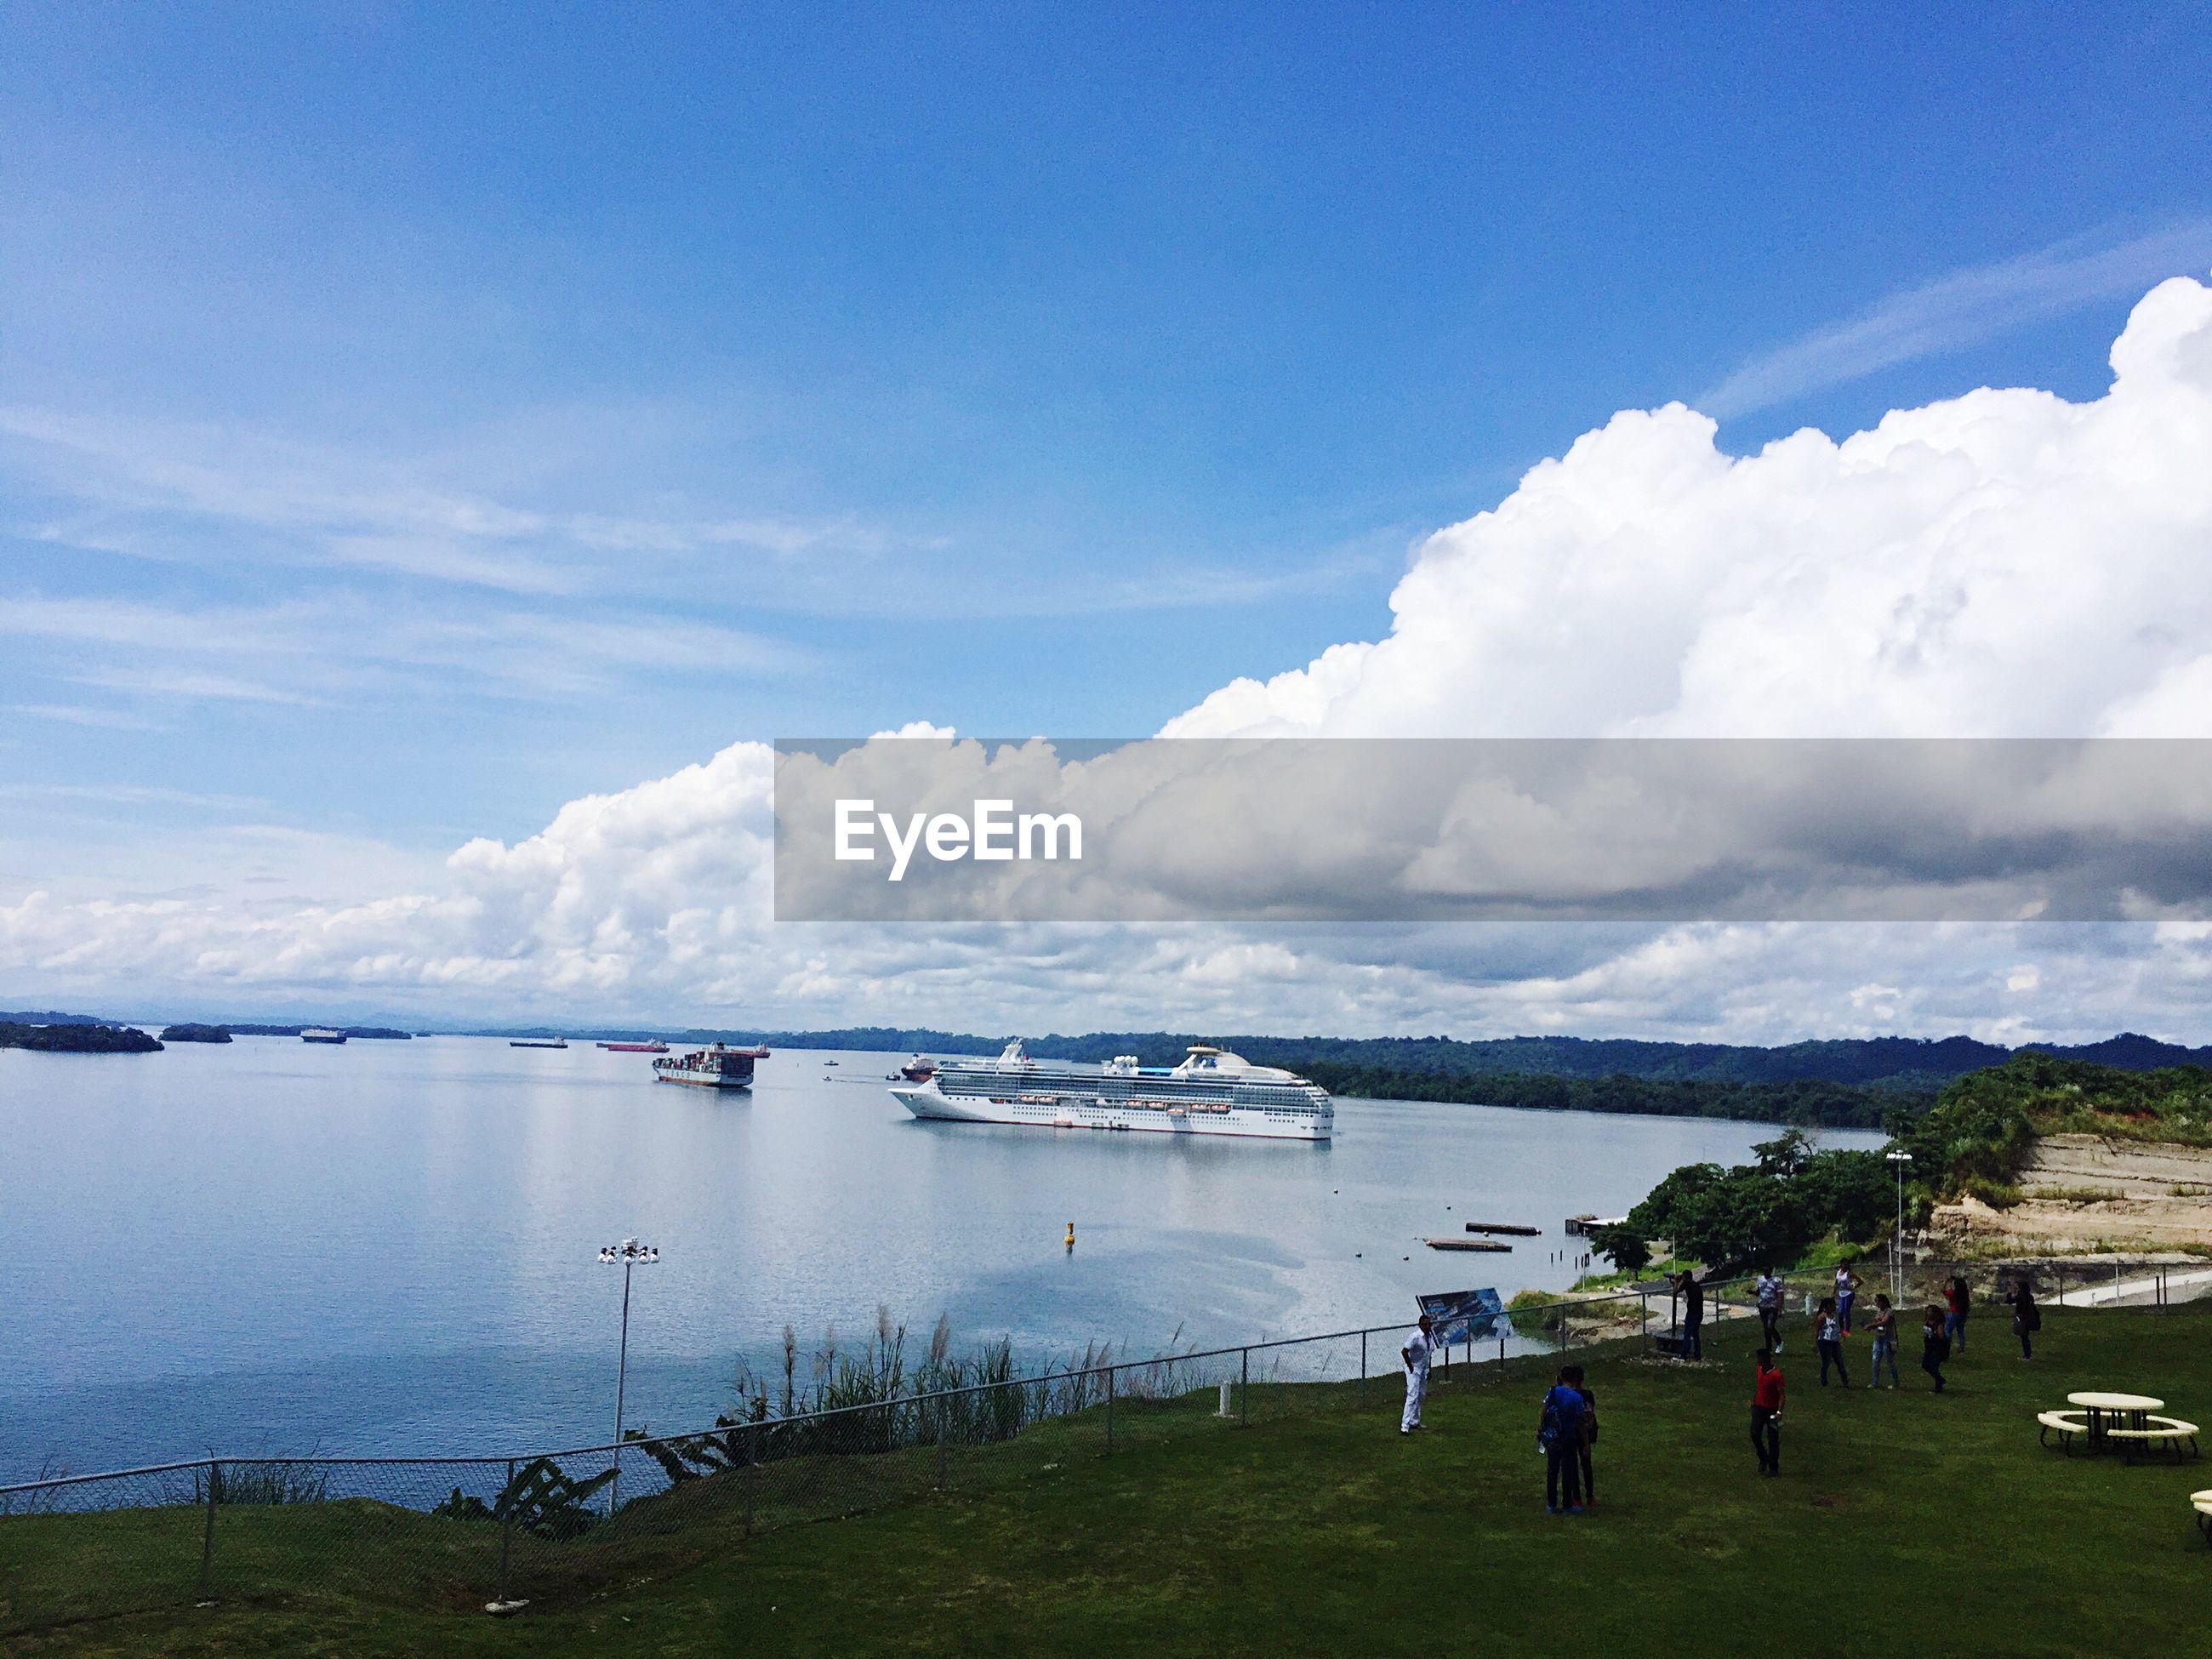 cloud - sky, sky, water, blue, nature, nautical vessel, sea, scenics, beauty in nature, travel destinations, outdoors, vacations, tranquility, tranquil scene, landscape, harbor, day, extreme weather, no people, yacht